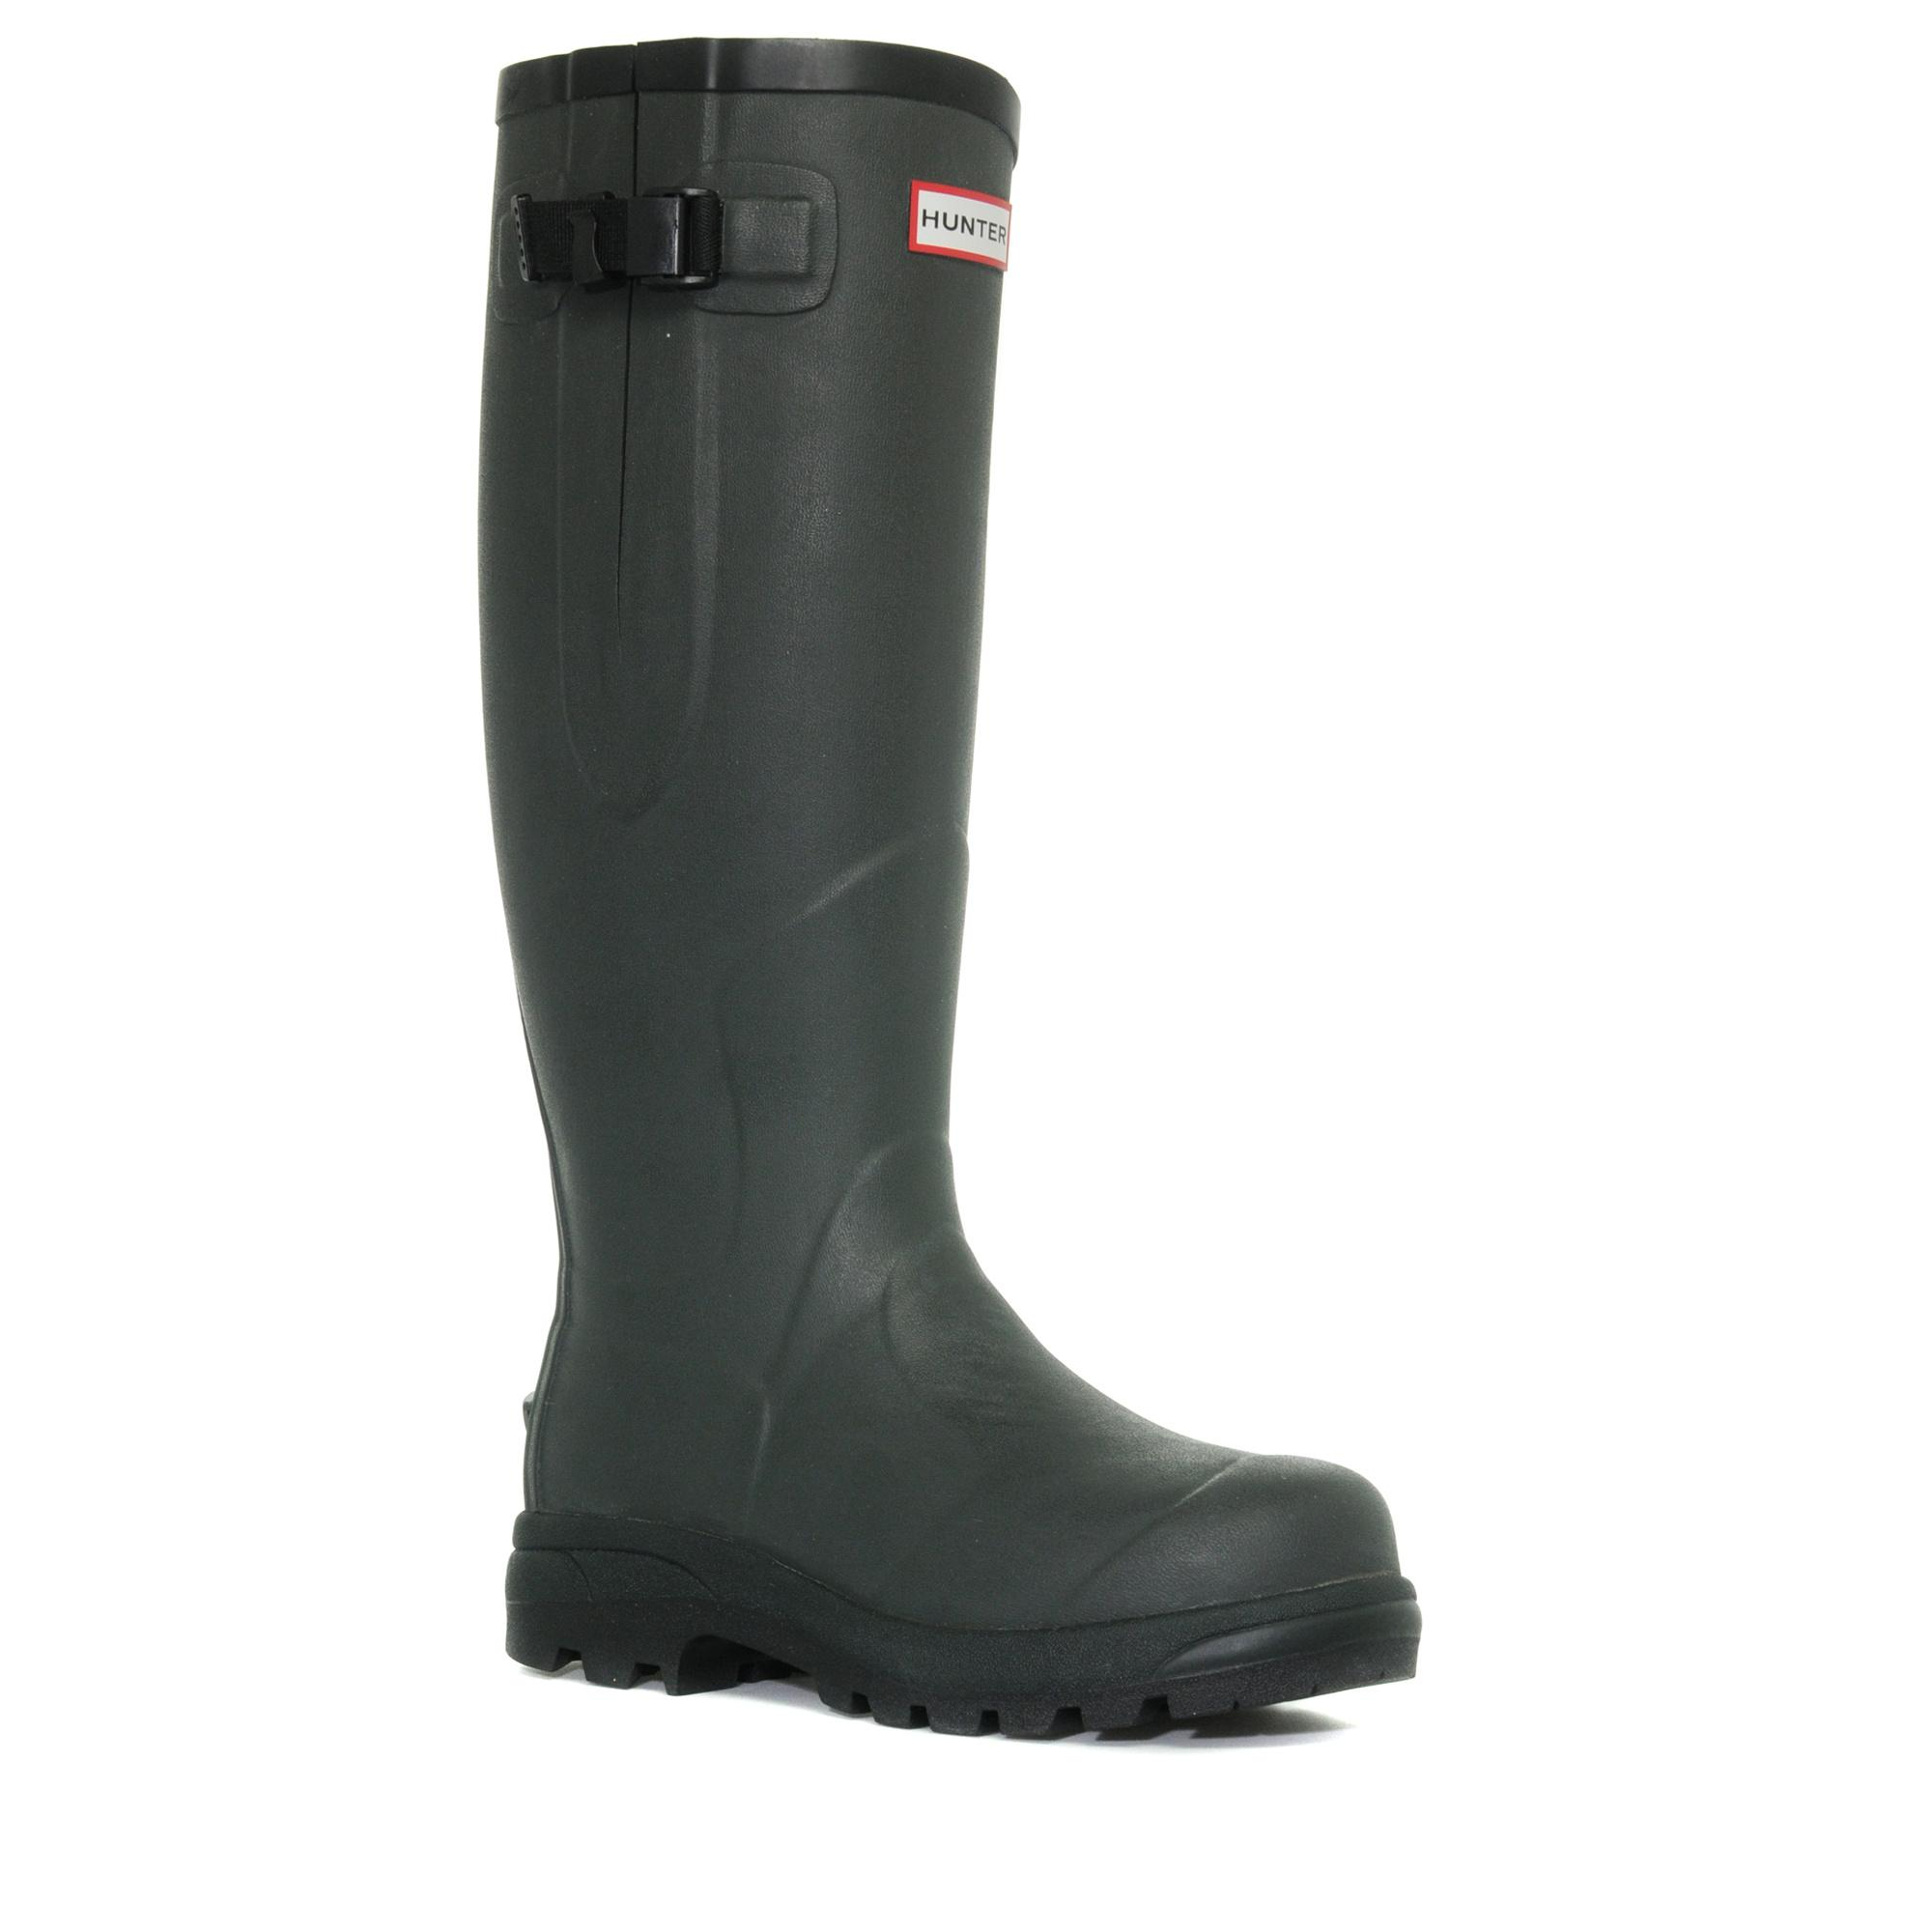 Hunter Unisex Balmoral Classic Wellies Green